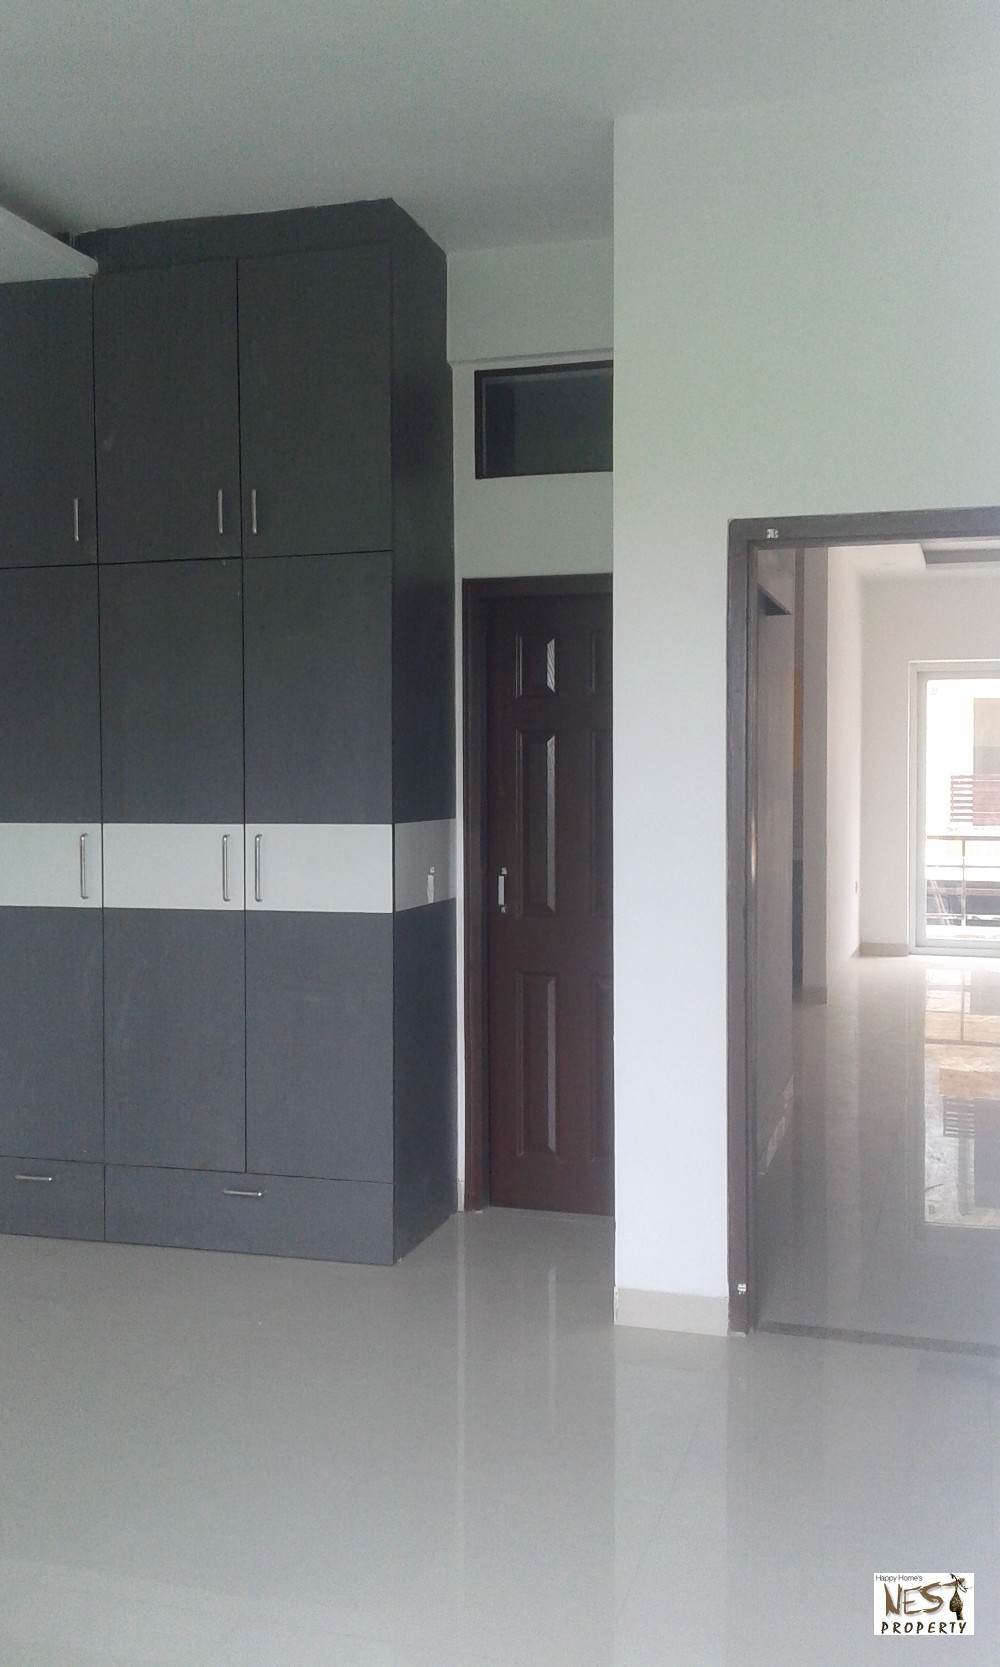 3 bhk Ready To Move Flats in Zirakpur, prime homes